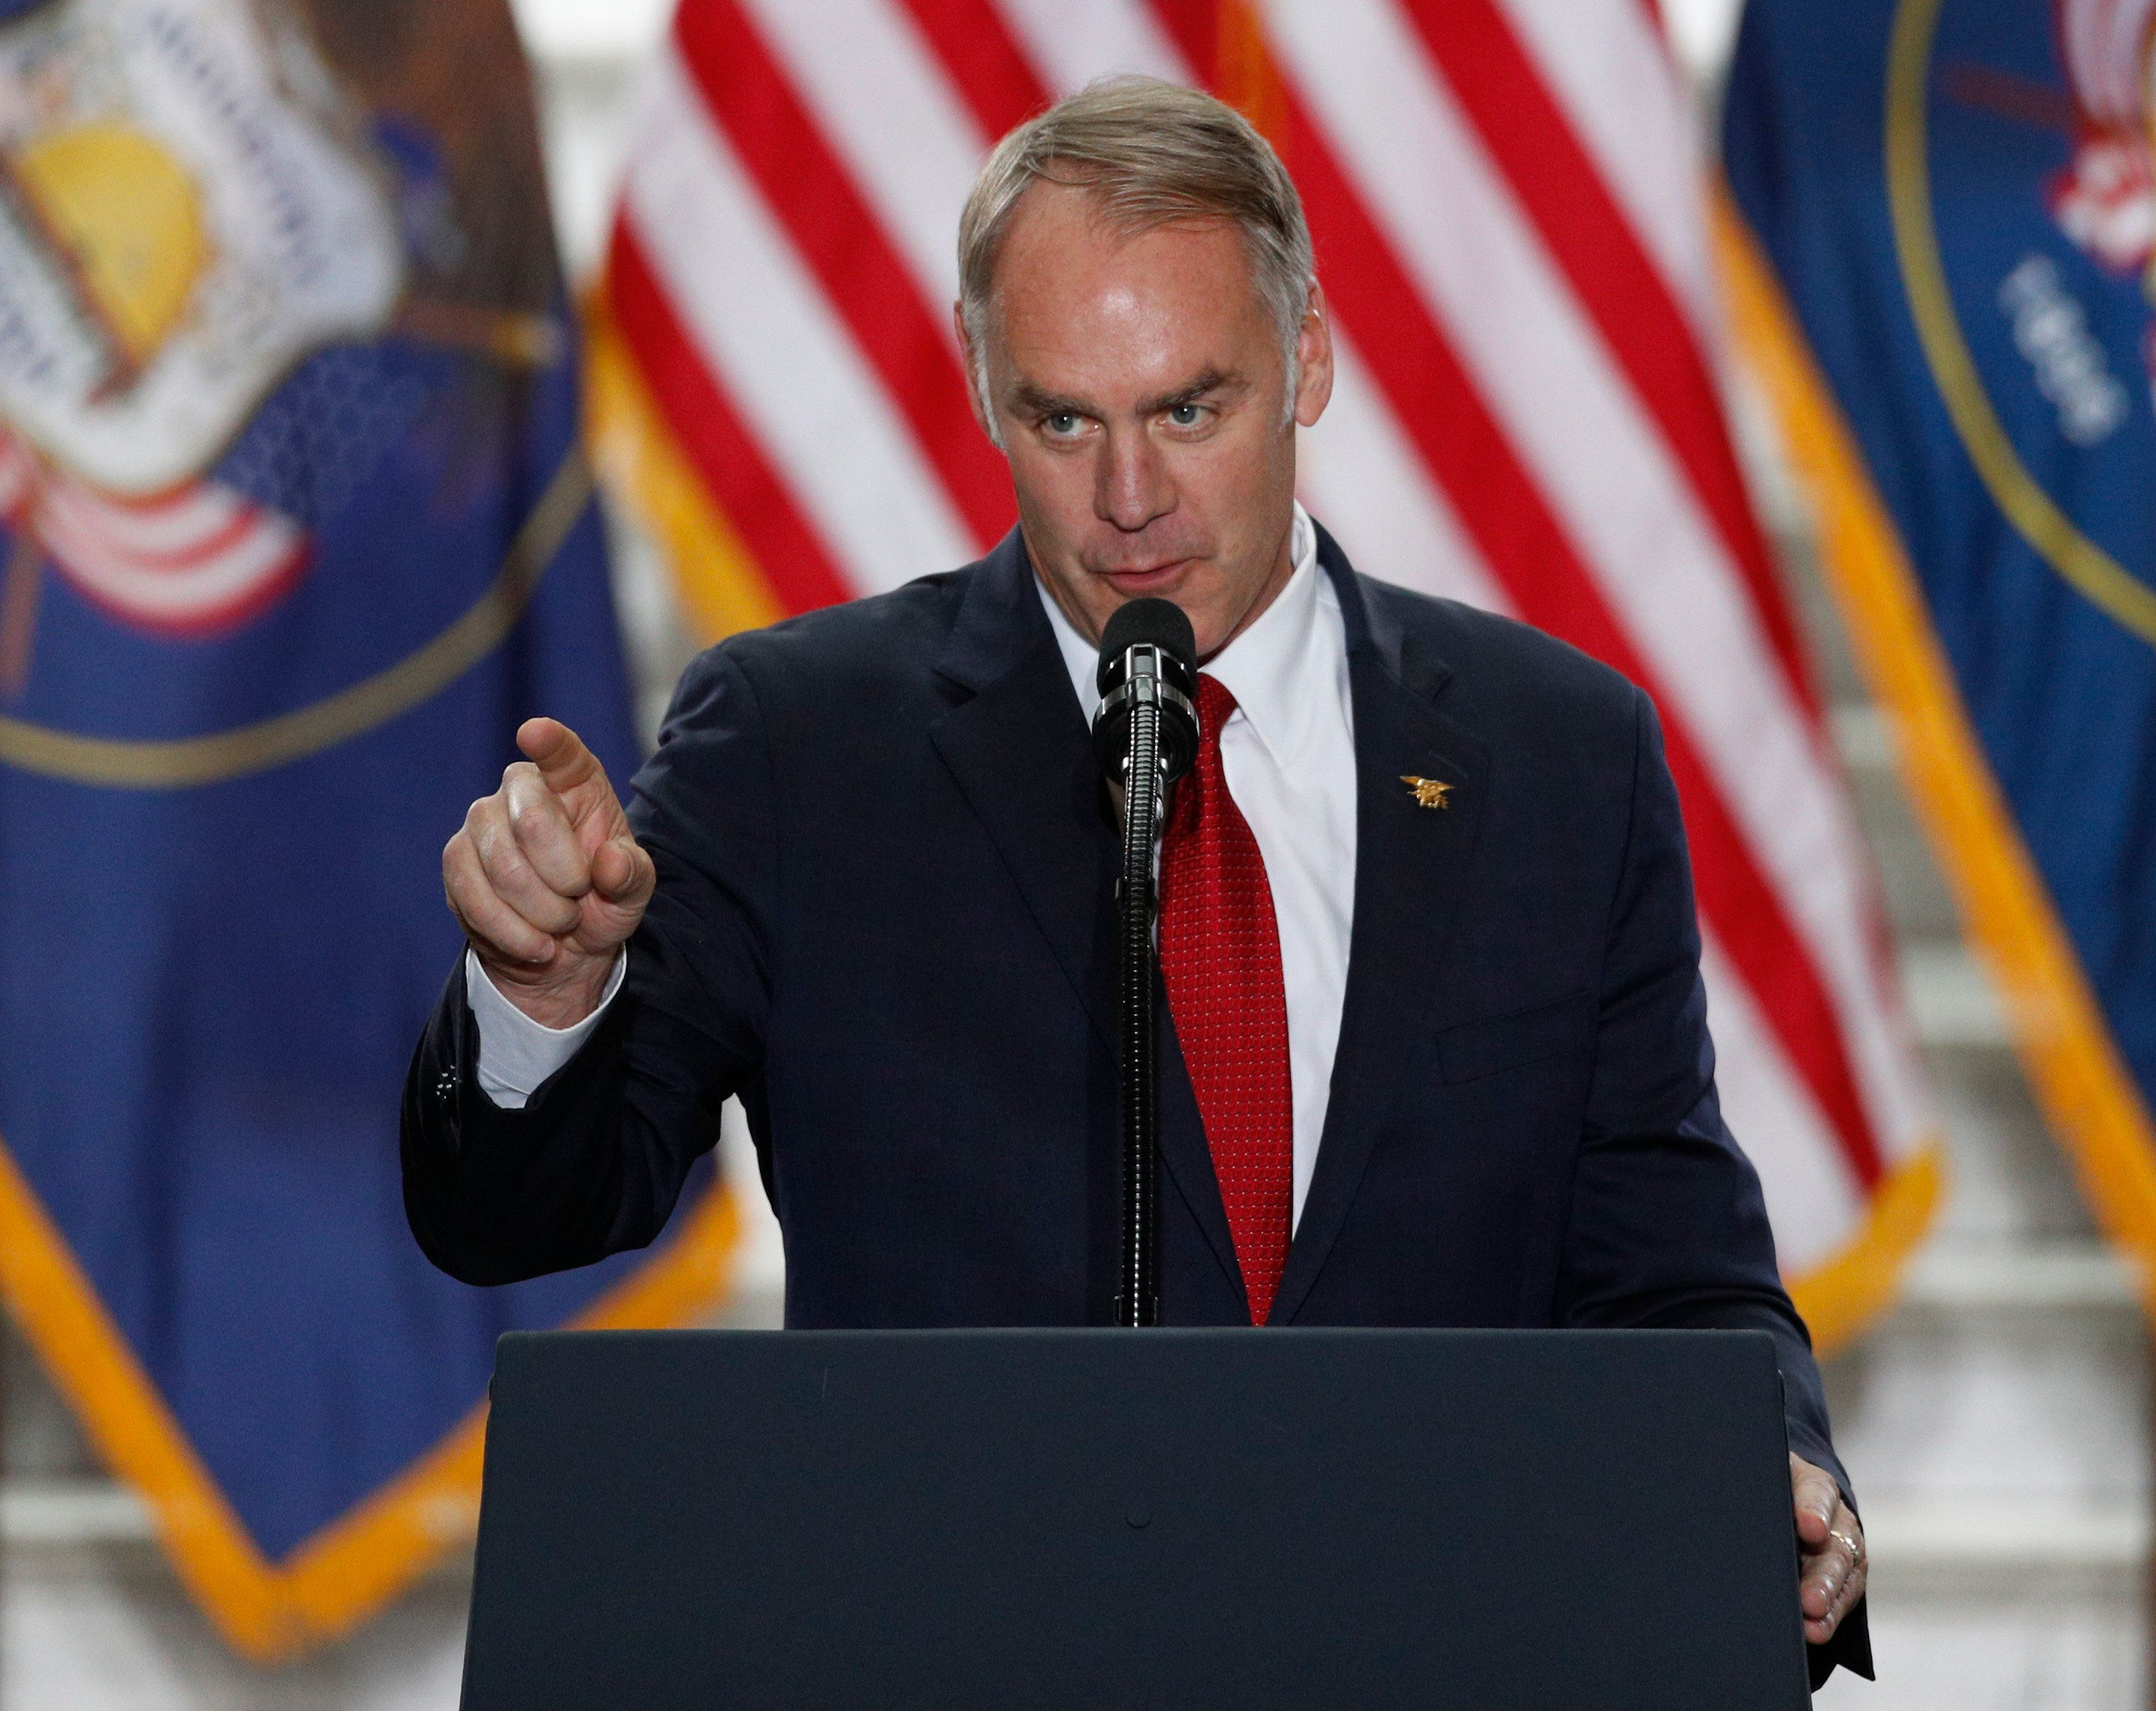 Interior Secretary Ryan Zinke has said repeatedly pegged himself as a fierce opponent of selling and transferring public land